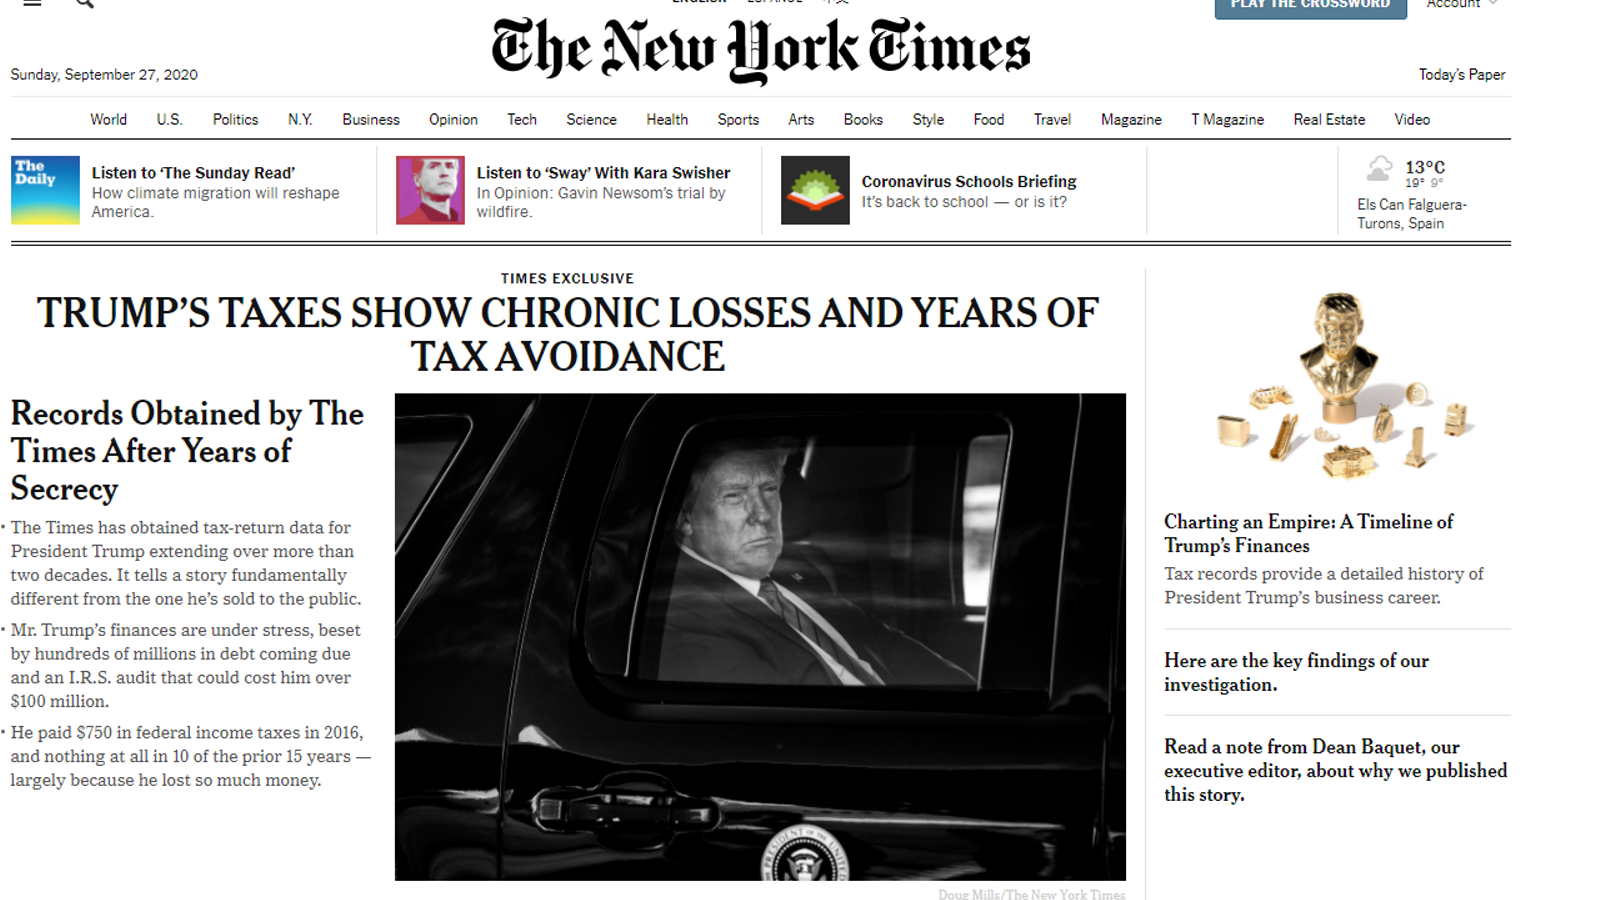 La informació publicada a The New York Times